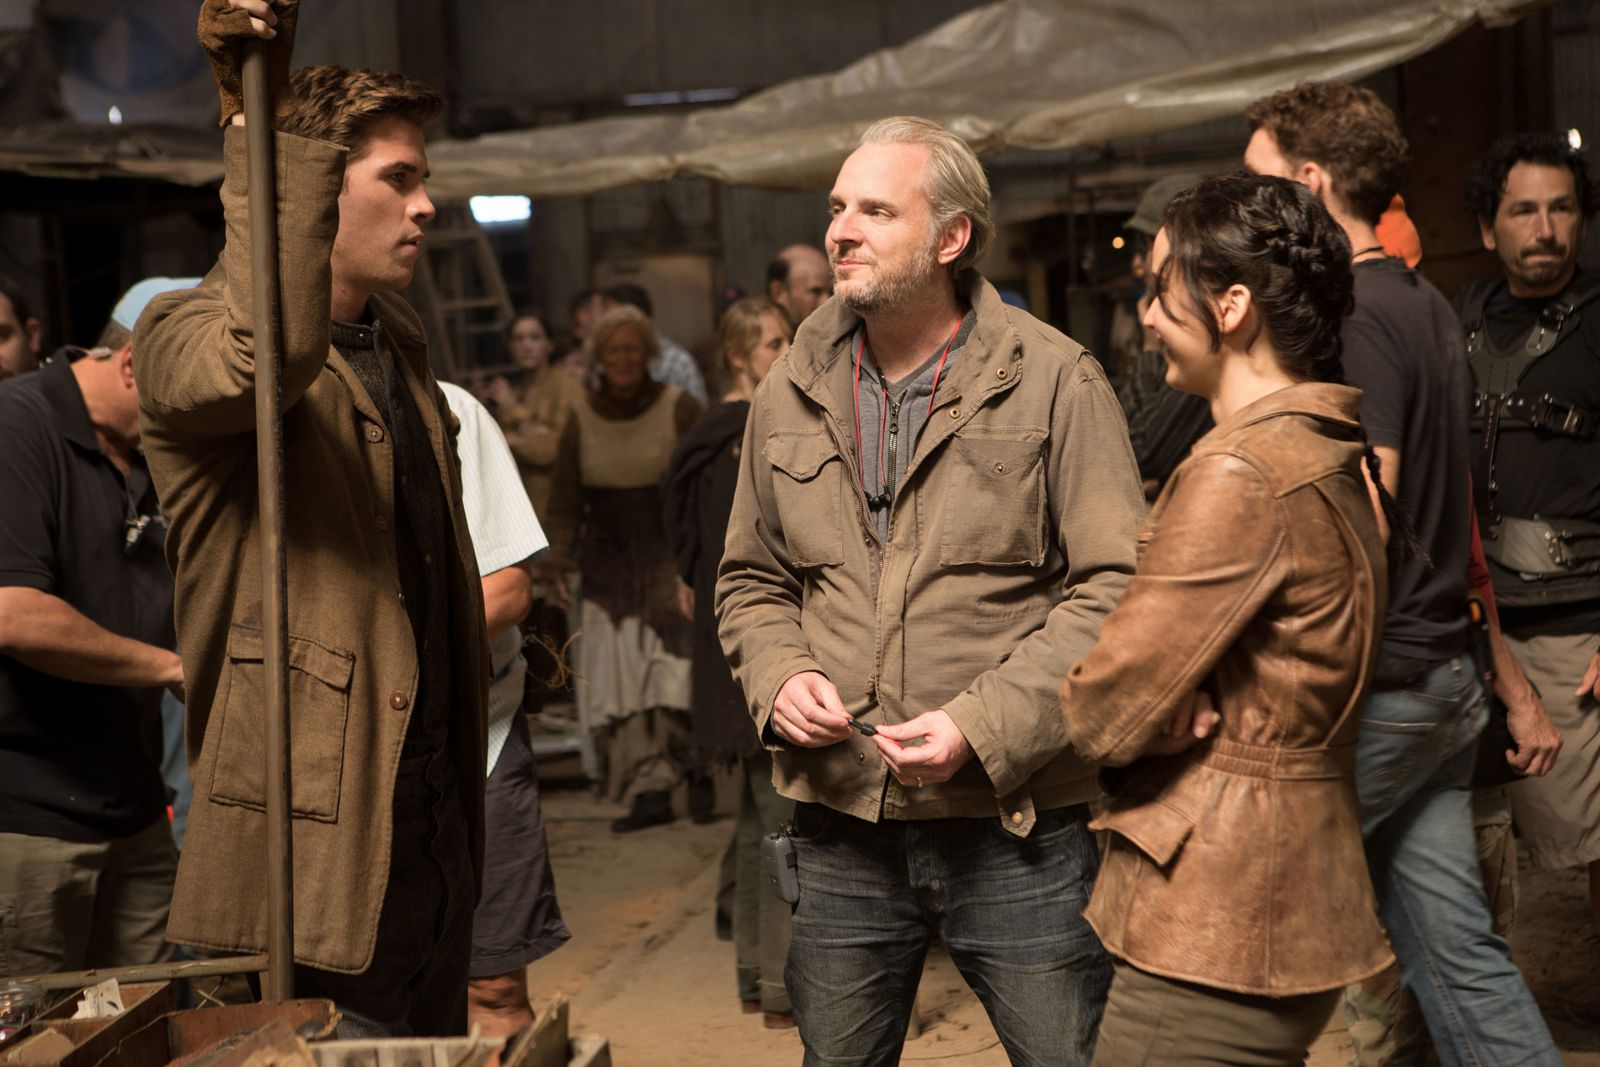 Liam Hemsworth (Gale), Regisseur Francis Lawrence und Jennifer Lawrence (Katniss) am Set